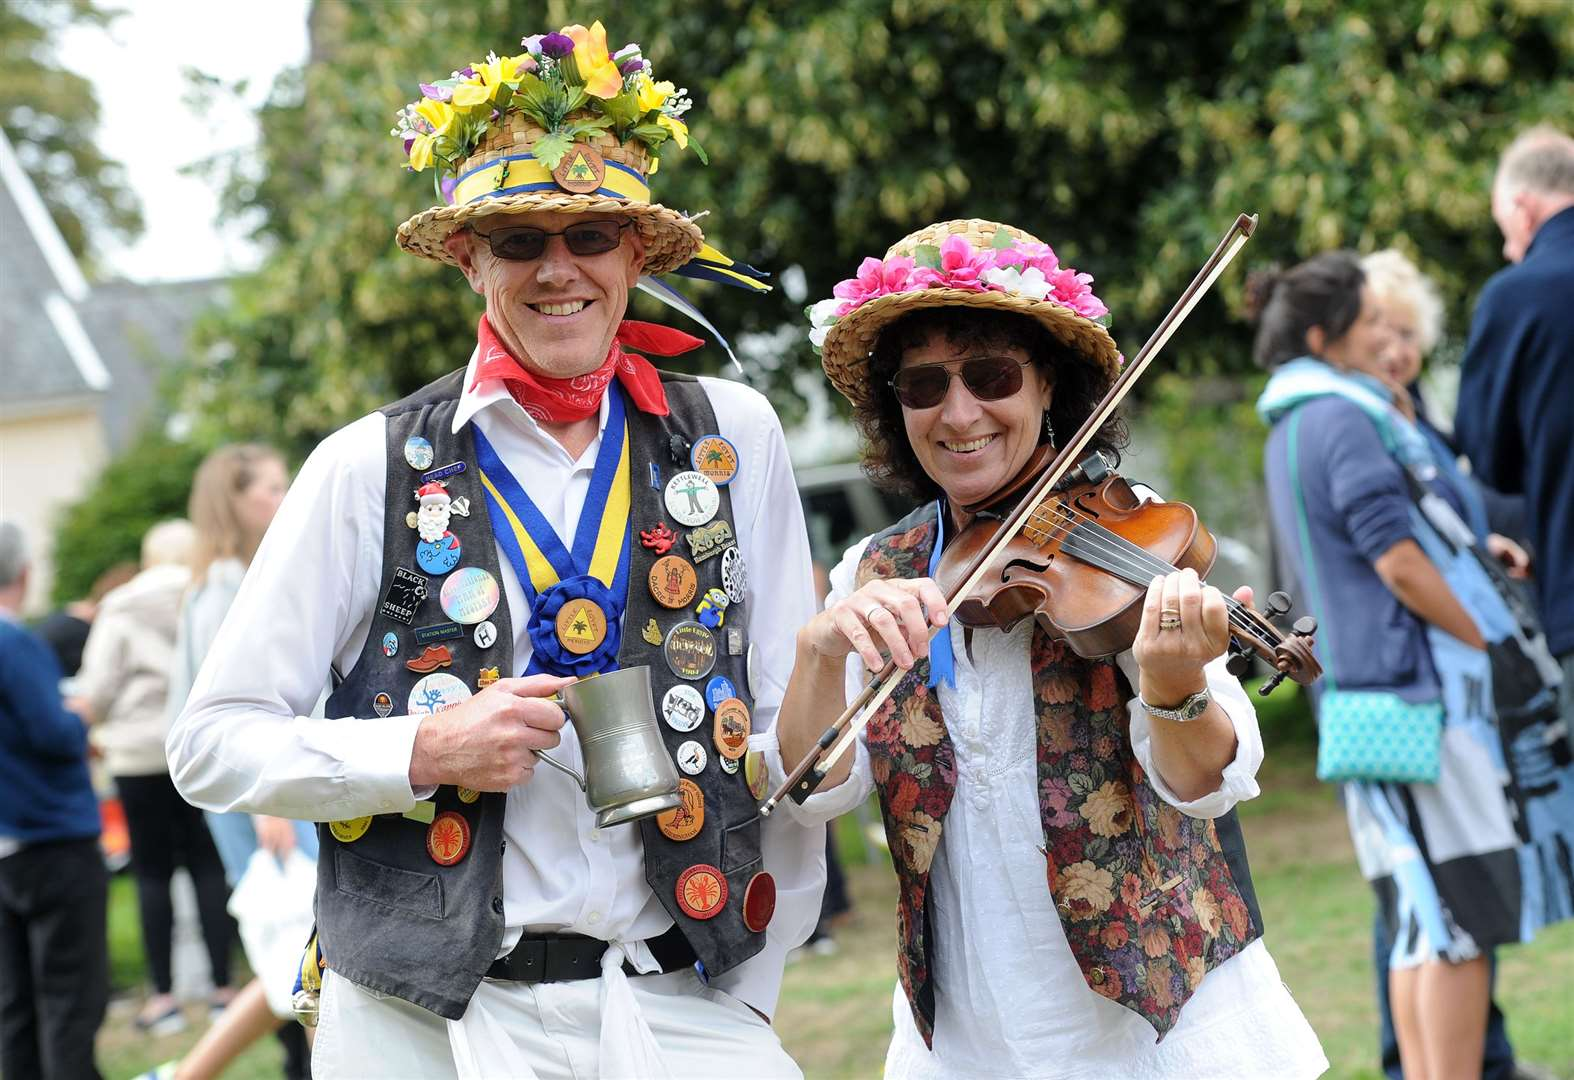 Hartest hopes for large crowds at annual fete this Bank Holiday weekend